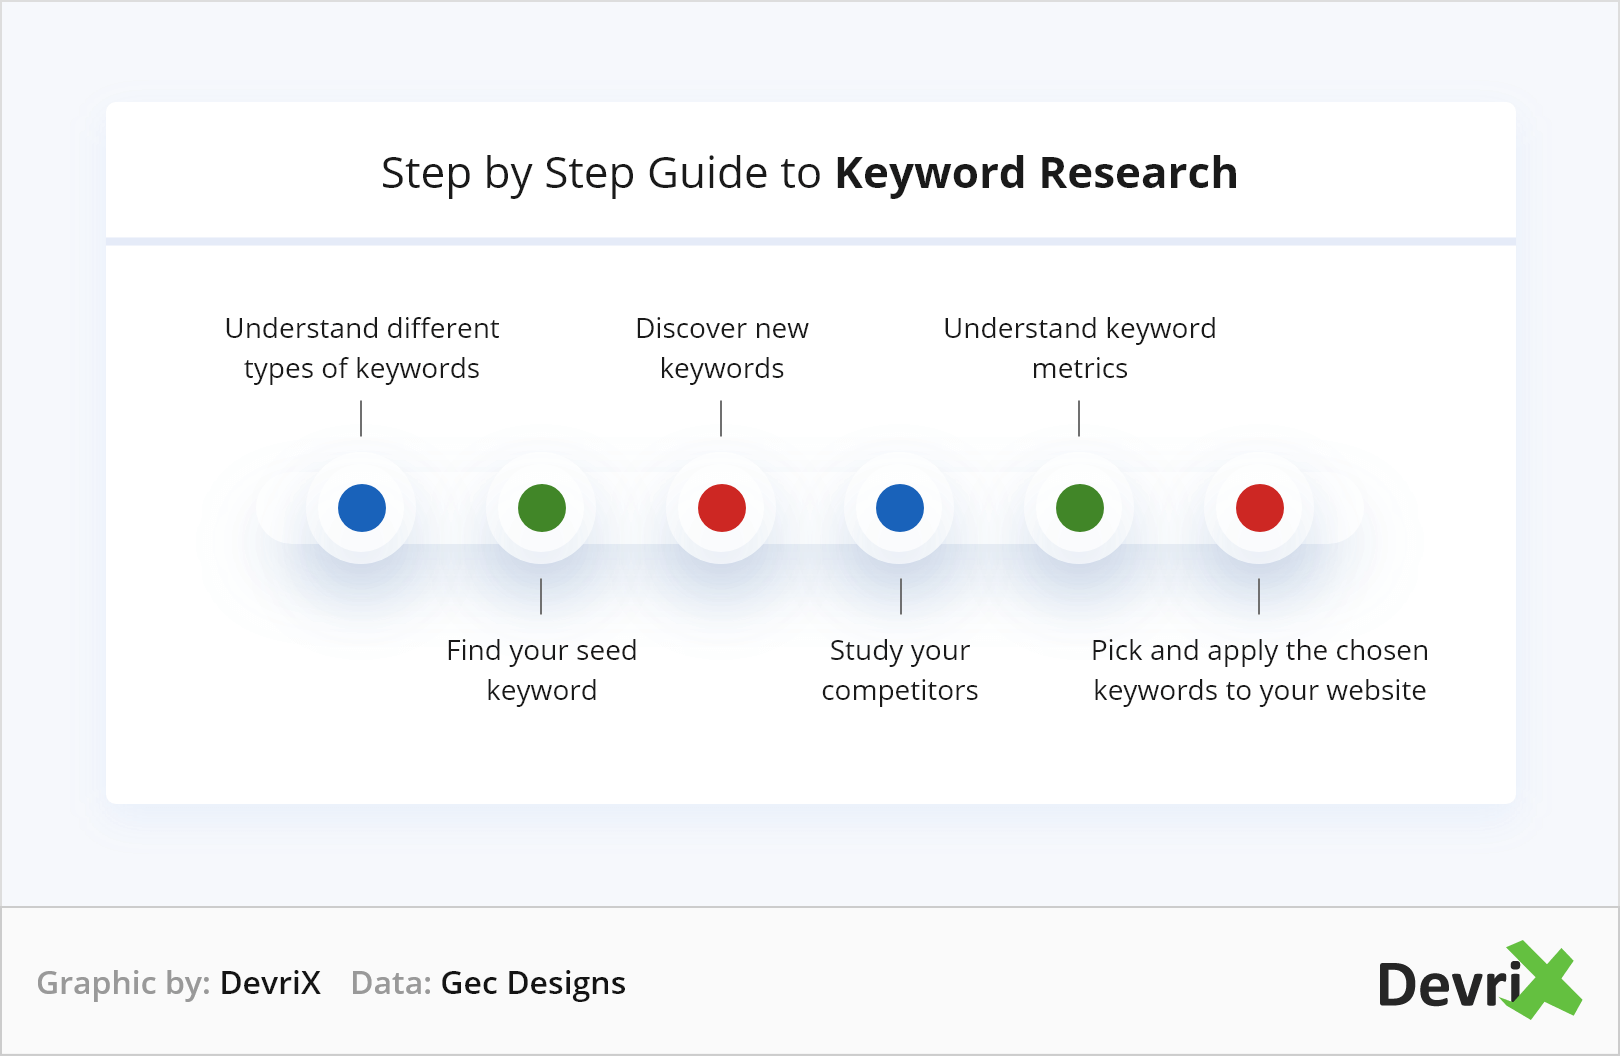 Step by Step Guide to Keyword Research